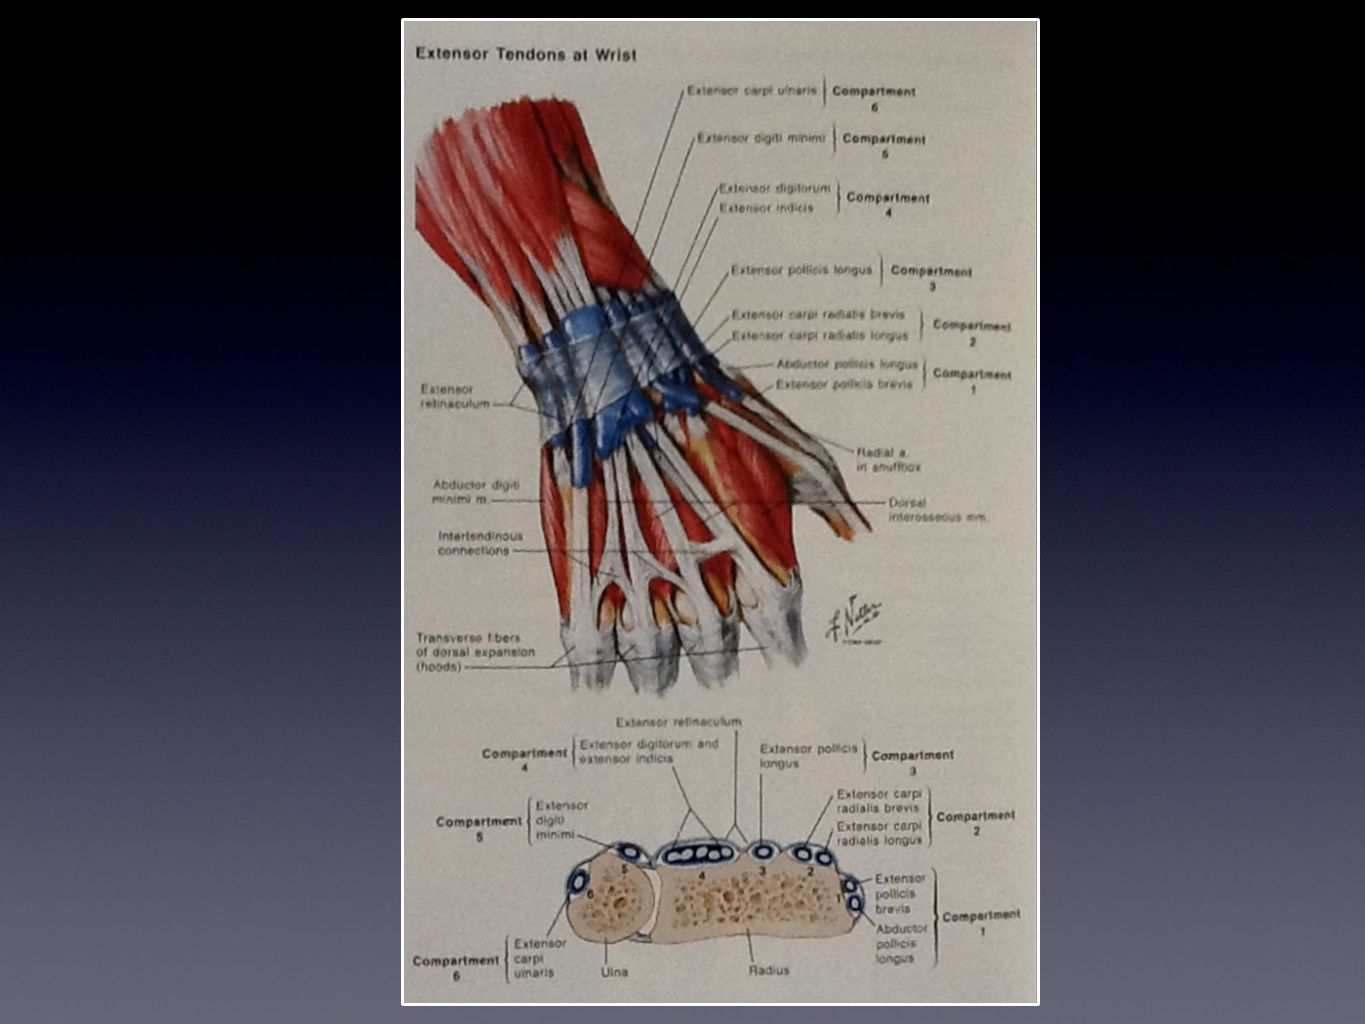 FCR Tendinitis Wrist splint, NSAID, ice for 4 weeks Corticosteroid injection FCR sheath release Excise frayed fibers Debride trapezial groove spurs